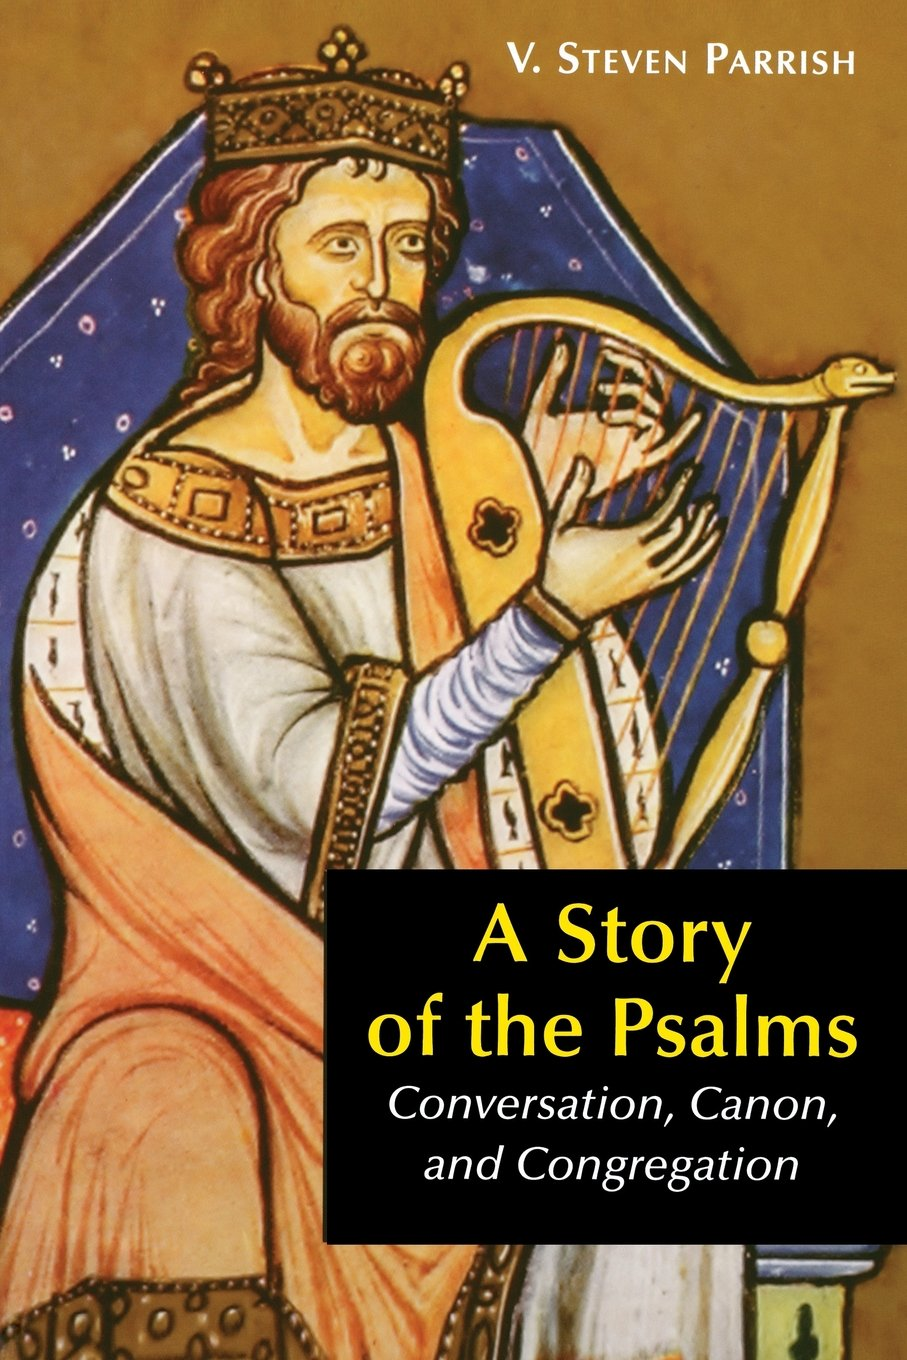 A Story of the Psalms: Conversation, Canon, and Congregation pdf